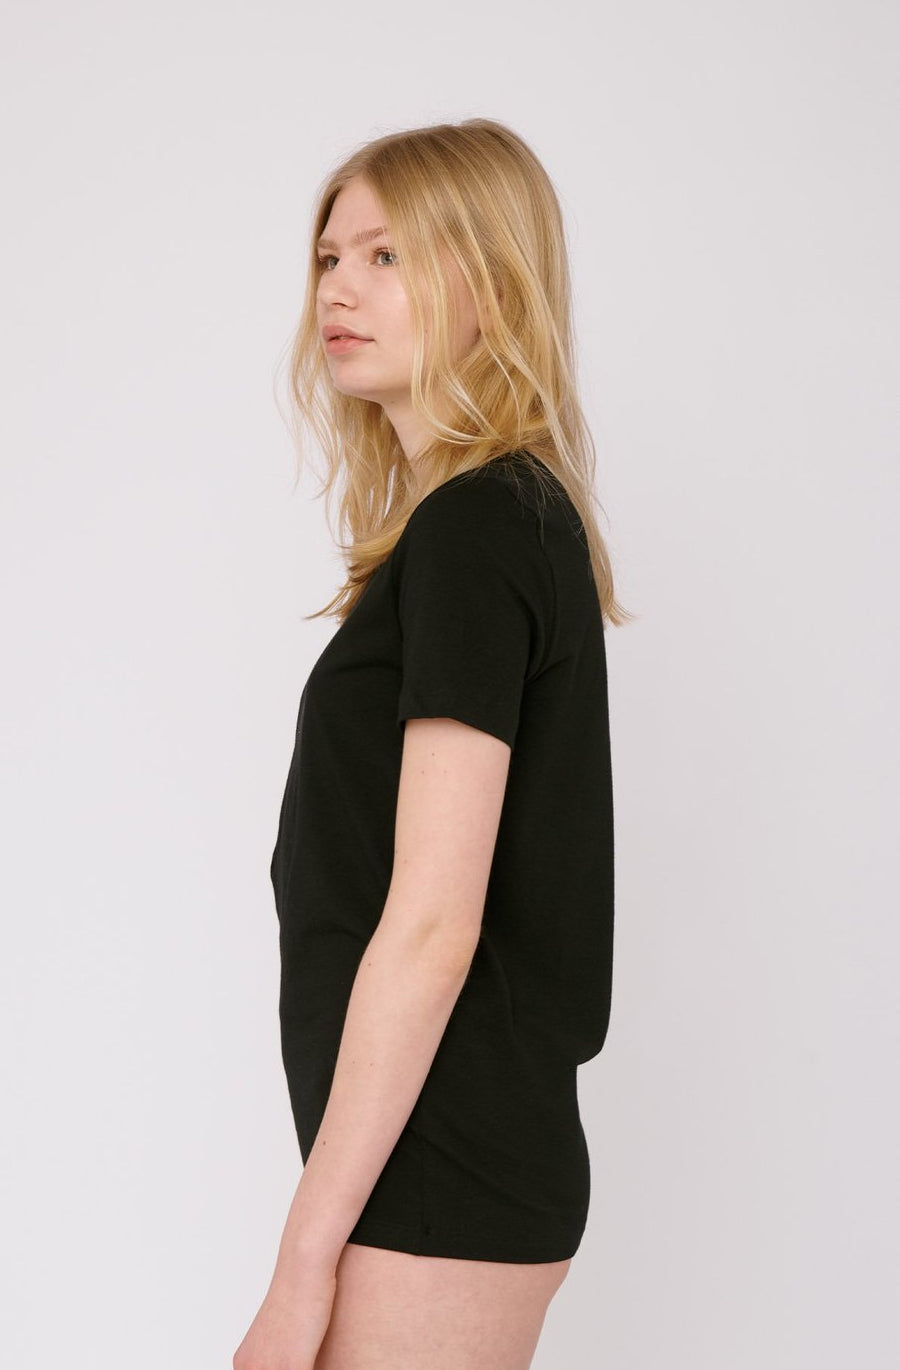 Organic Basics Organic Cotton Tee in Black with a relaxed fit made of 100% organic cotton